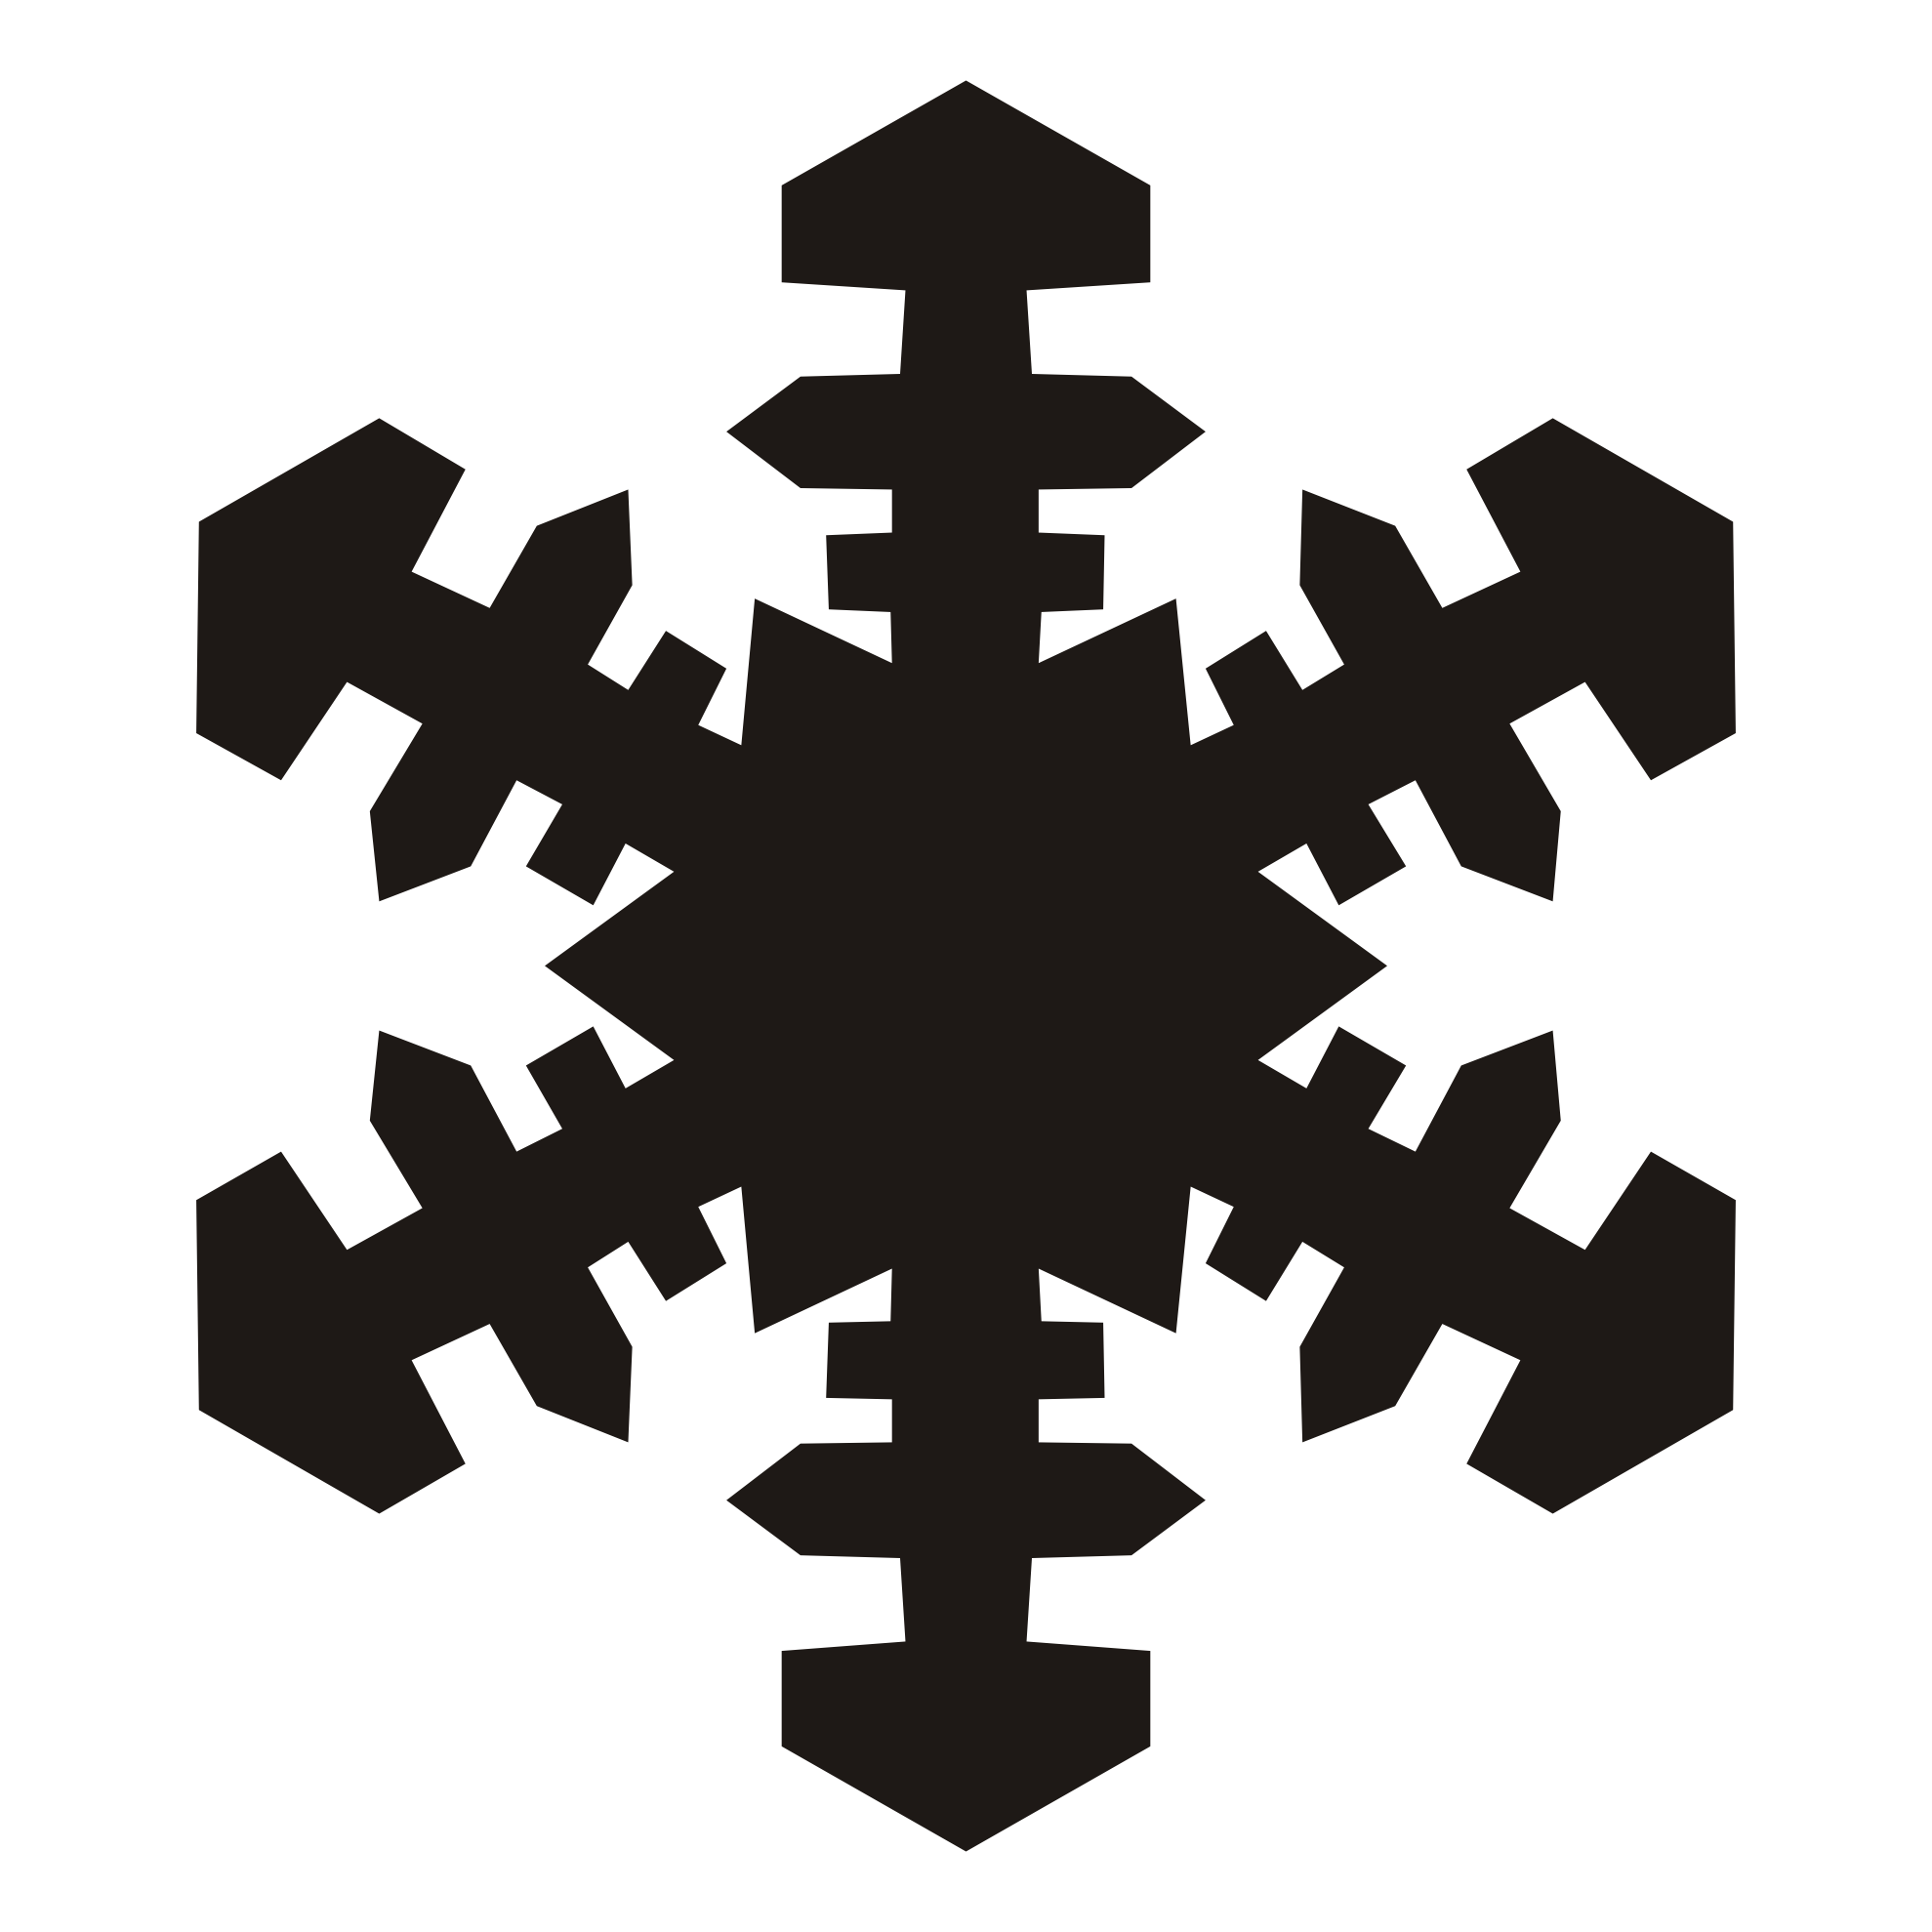 Winter snow clipart silhouette black and white winter snow clip art winter scene silhouette clipart clipart ... black and white